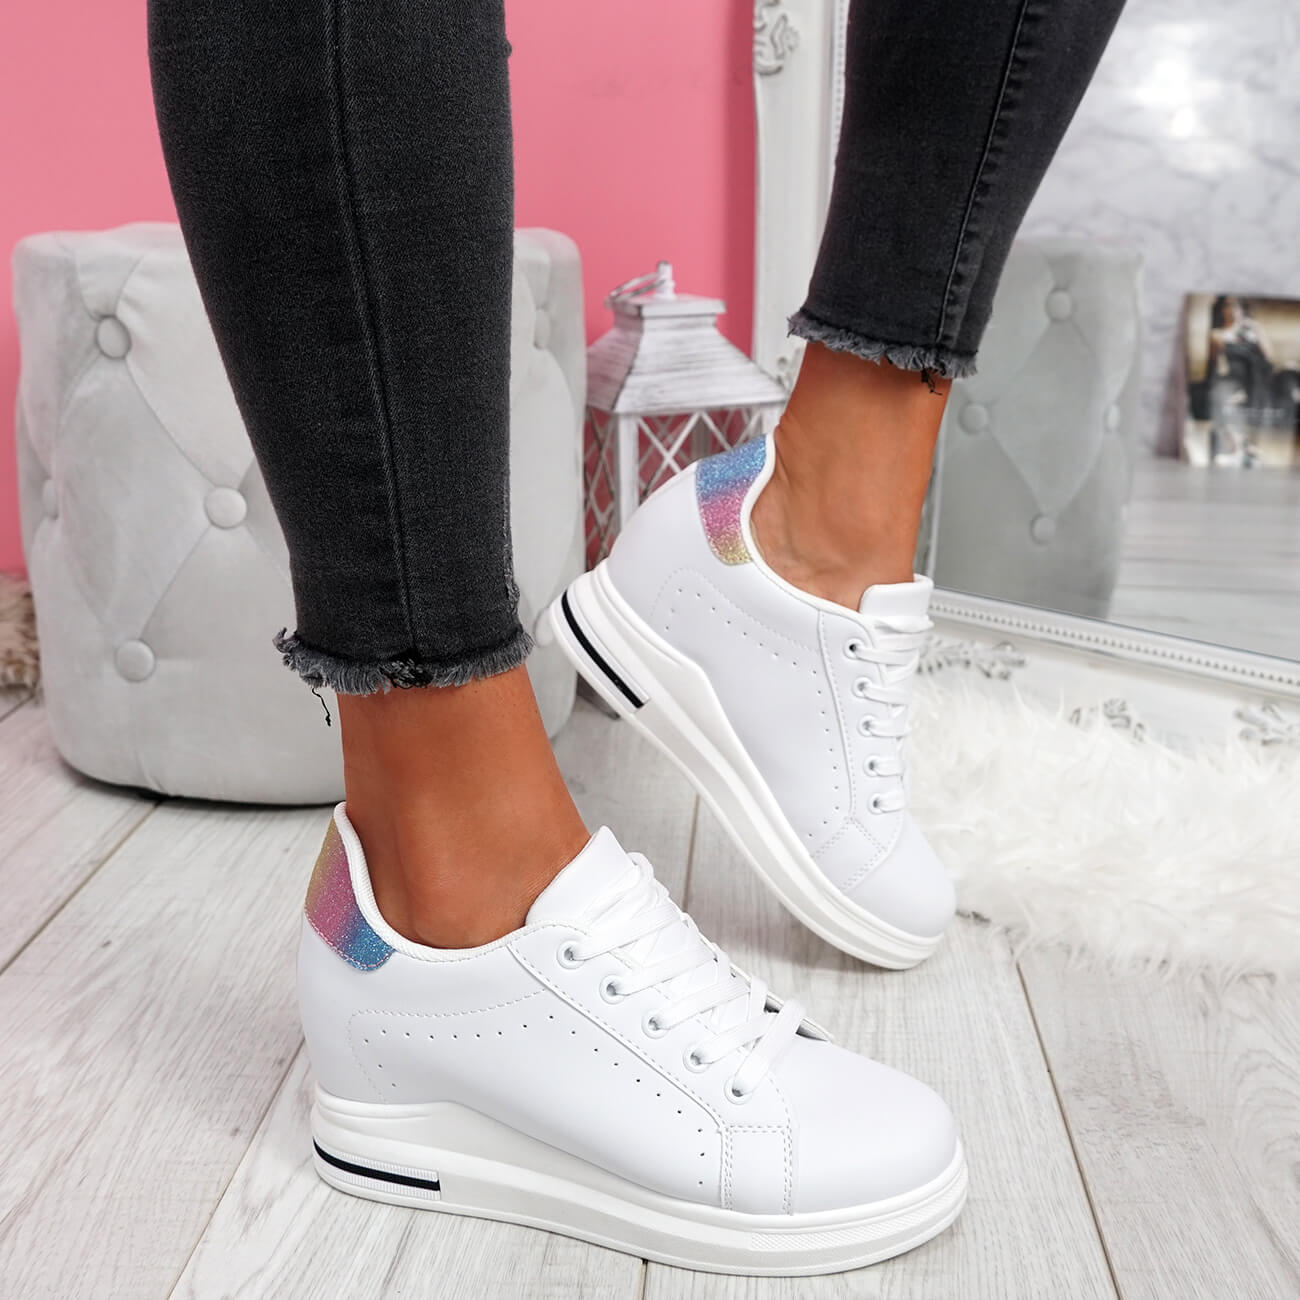 WOMENS-LADIES-LACE-UP-WEDGE-TRAINERS-HEEL-SNEAKERS-SHINY-PARTY-WOMEN-SHOES thumbnail 23